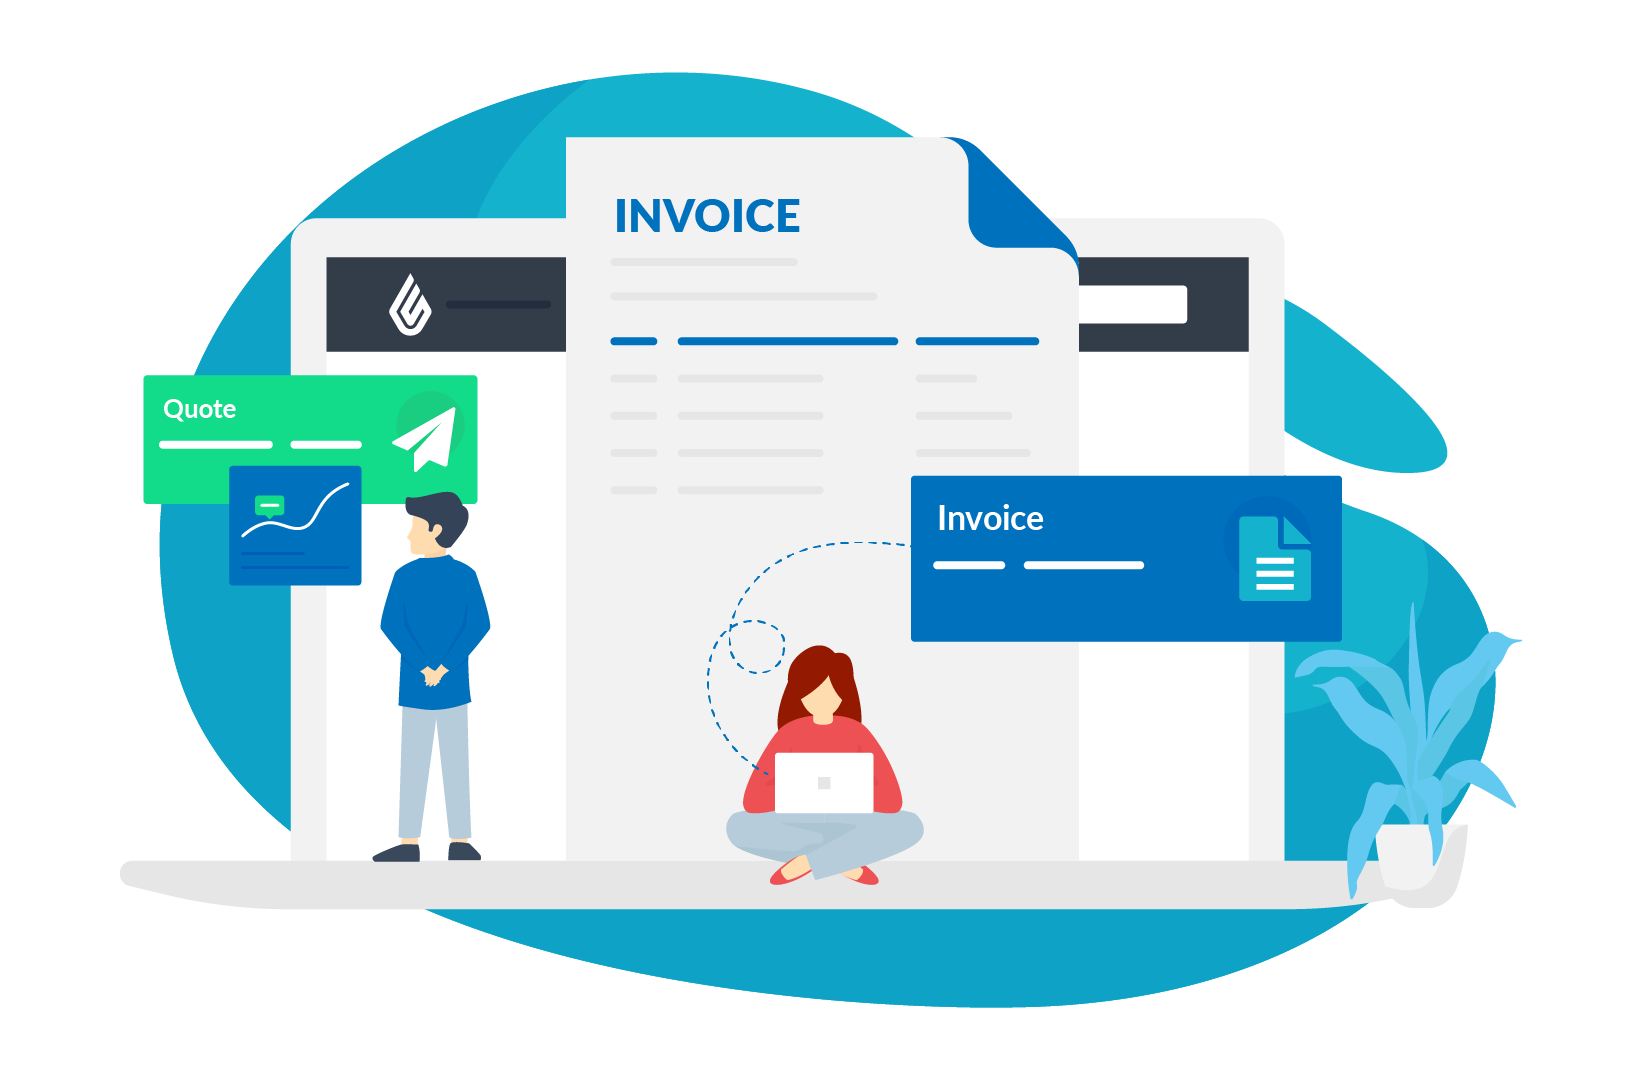 Invoicing & Quoting for Lightspeed Retail